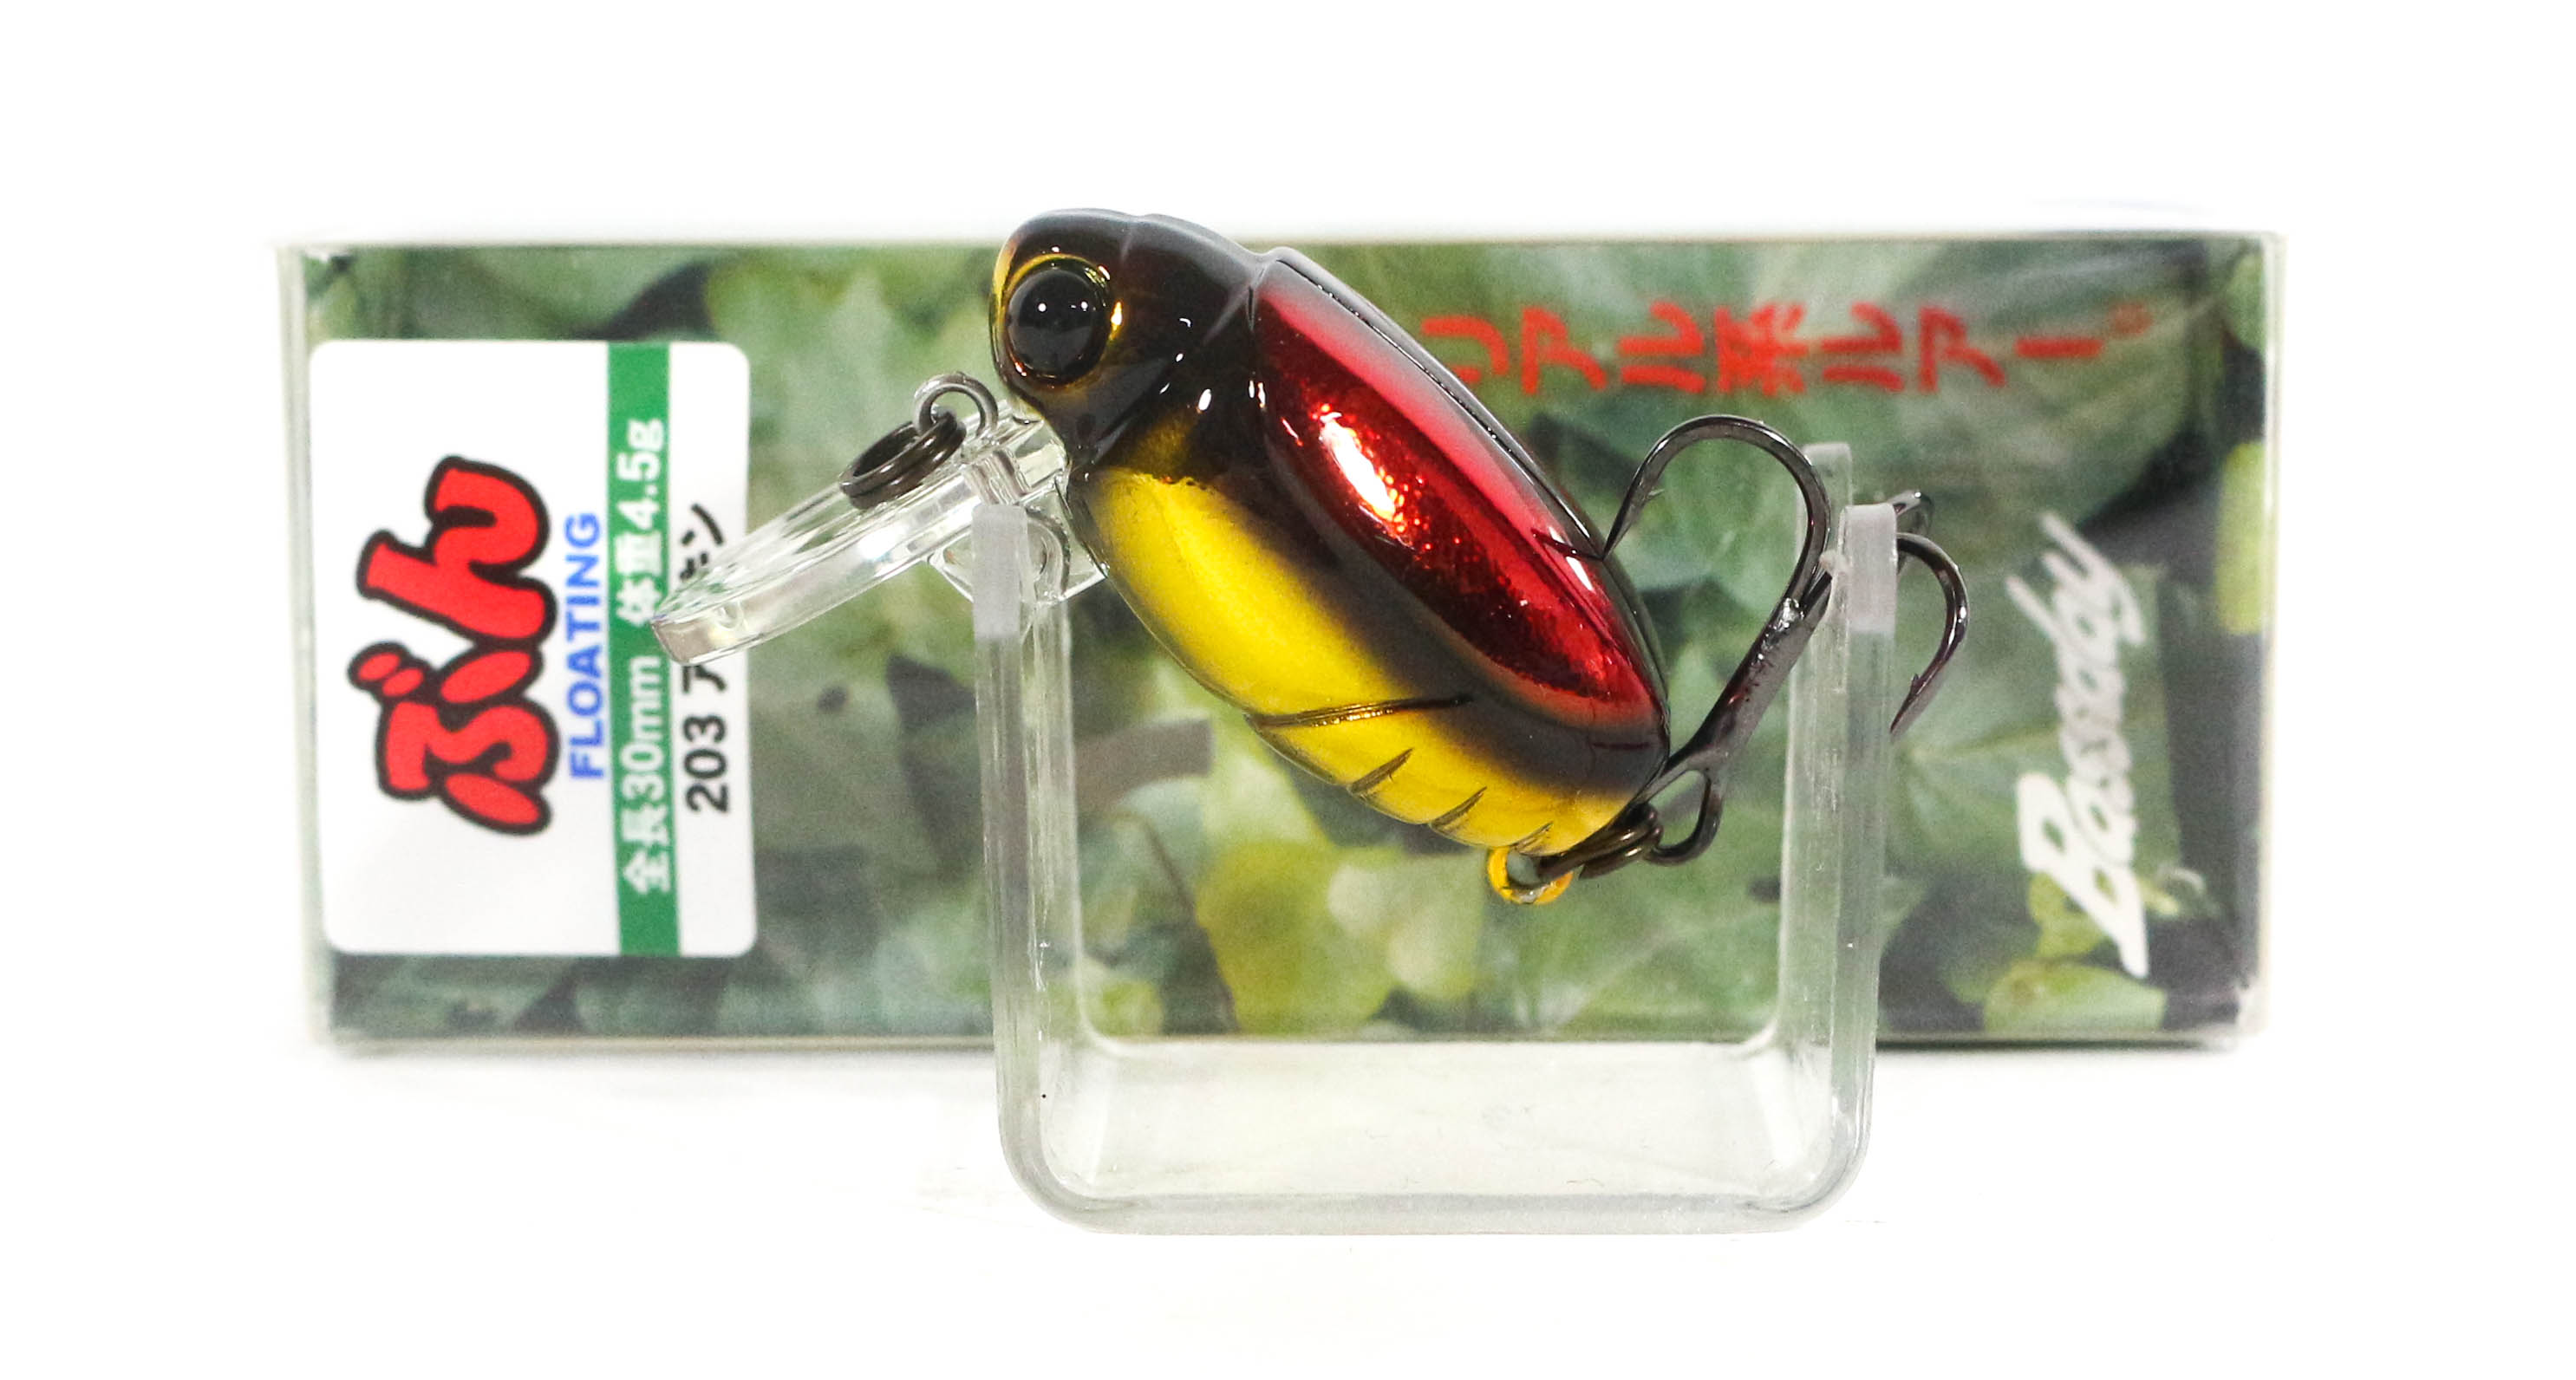 Bassday Beetle Bun 30F Floating Lure 4.5 grams 203 (3105)